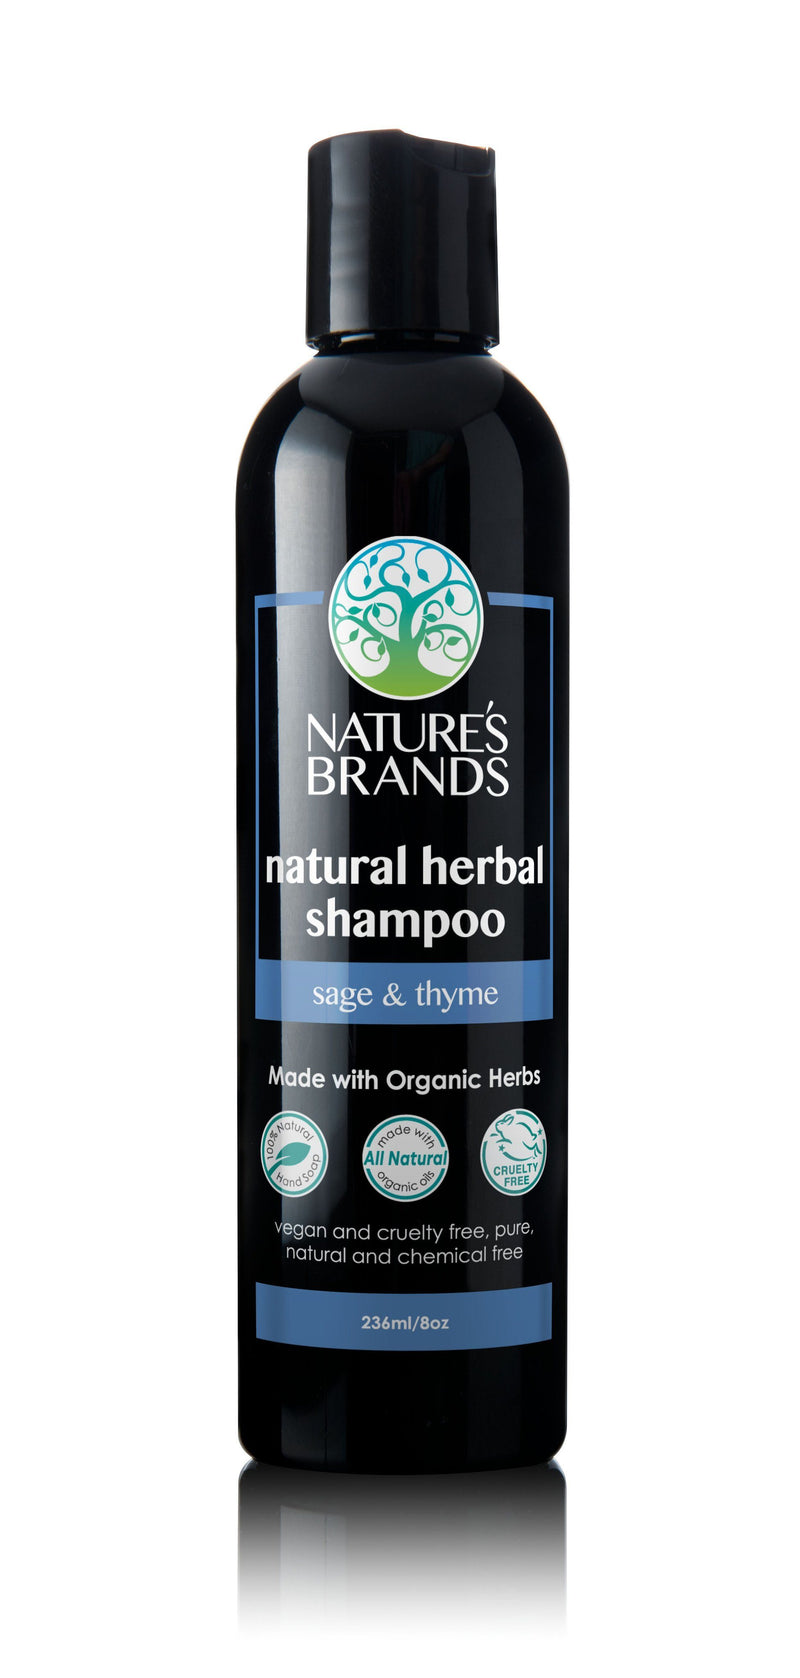 Herbal Choice Mari Natural Shampoo, Sage & Thyme; Made with Organic - Herbal Choice Mari Natural Shampoo, Sage & Thyme; Made with Organic - 8floz